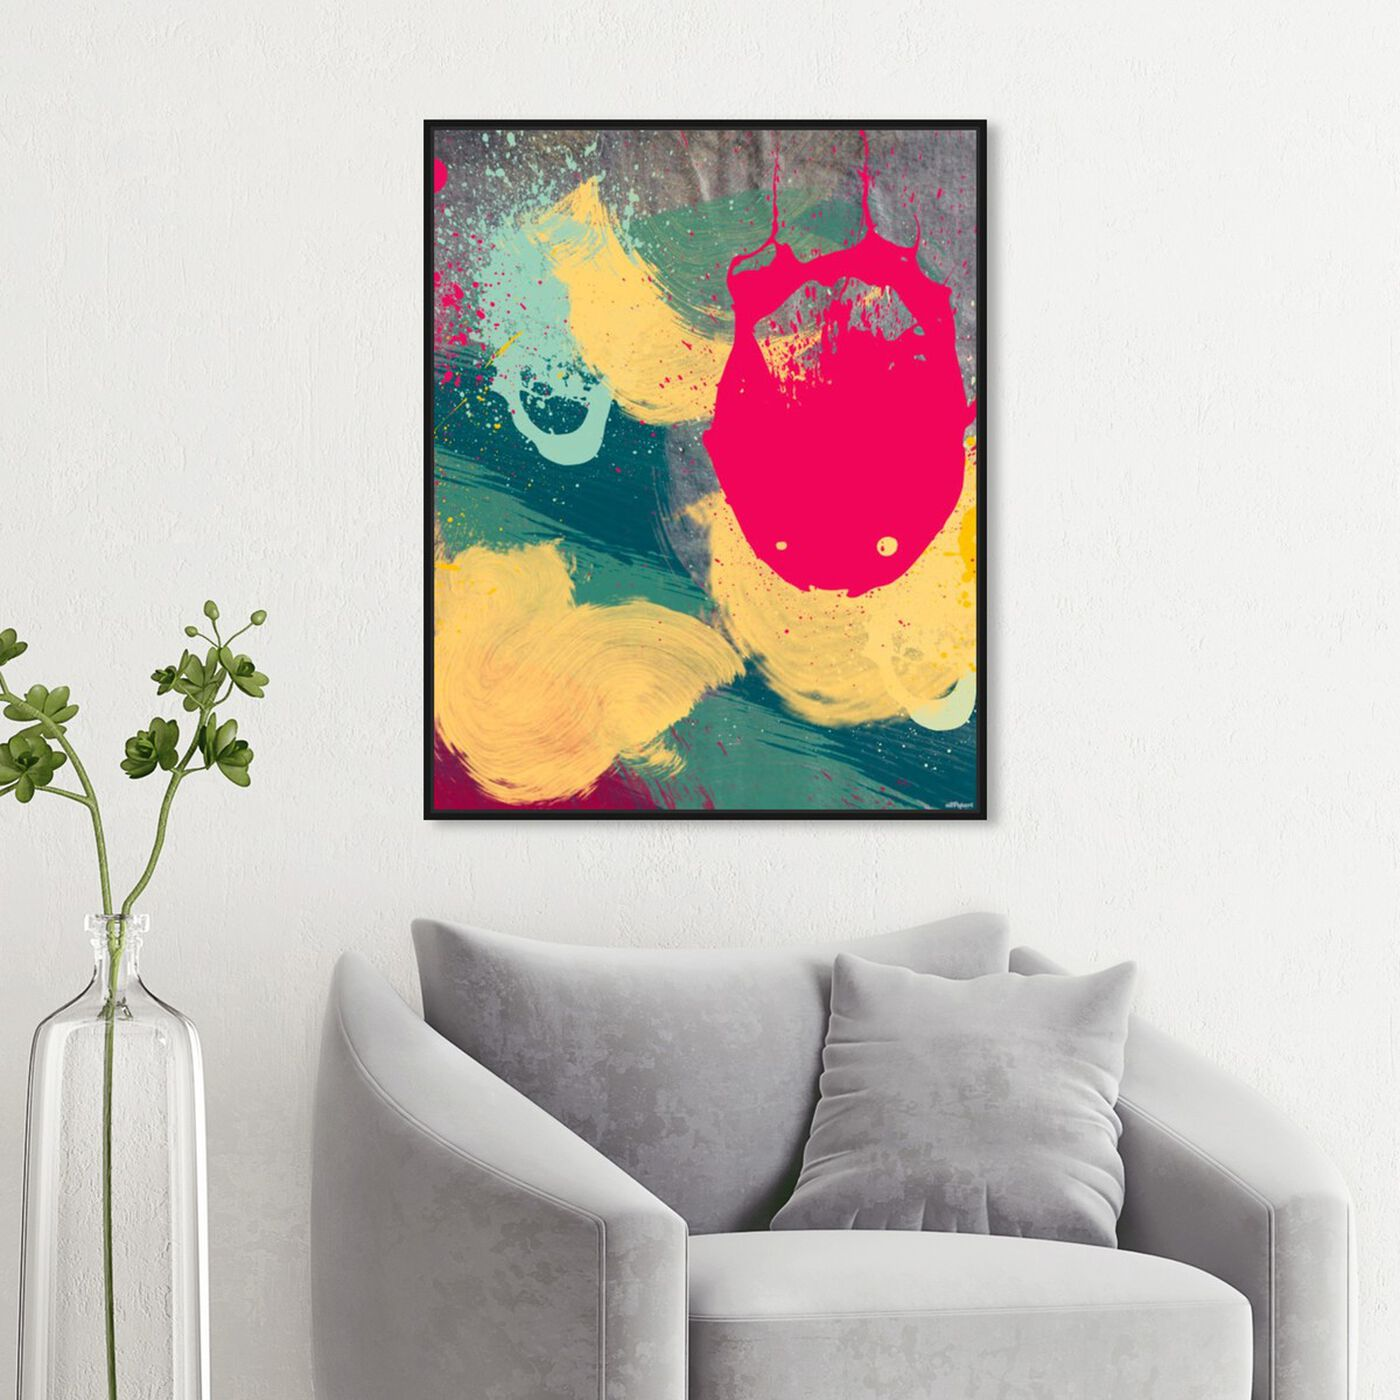 Hanging view of Strawberry Dreams featuring abstract and paint art.